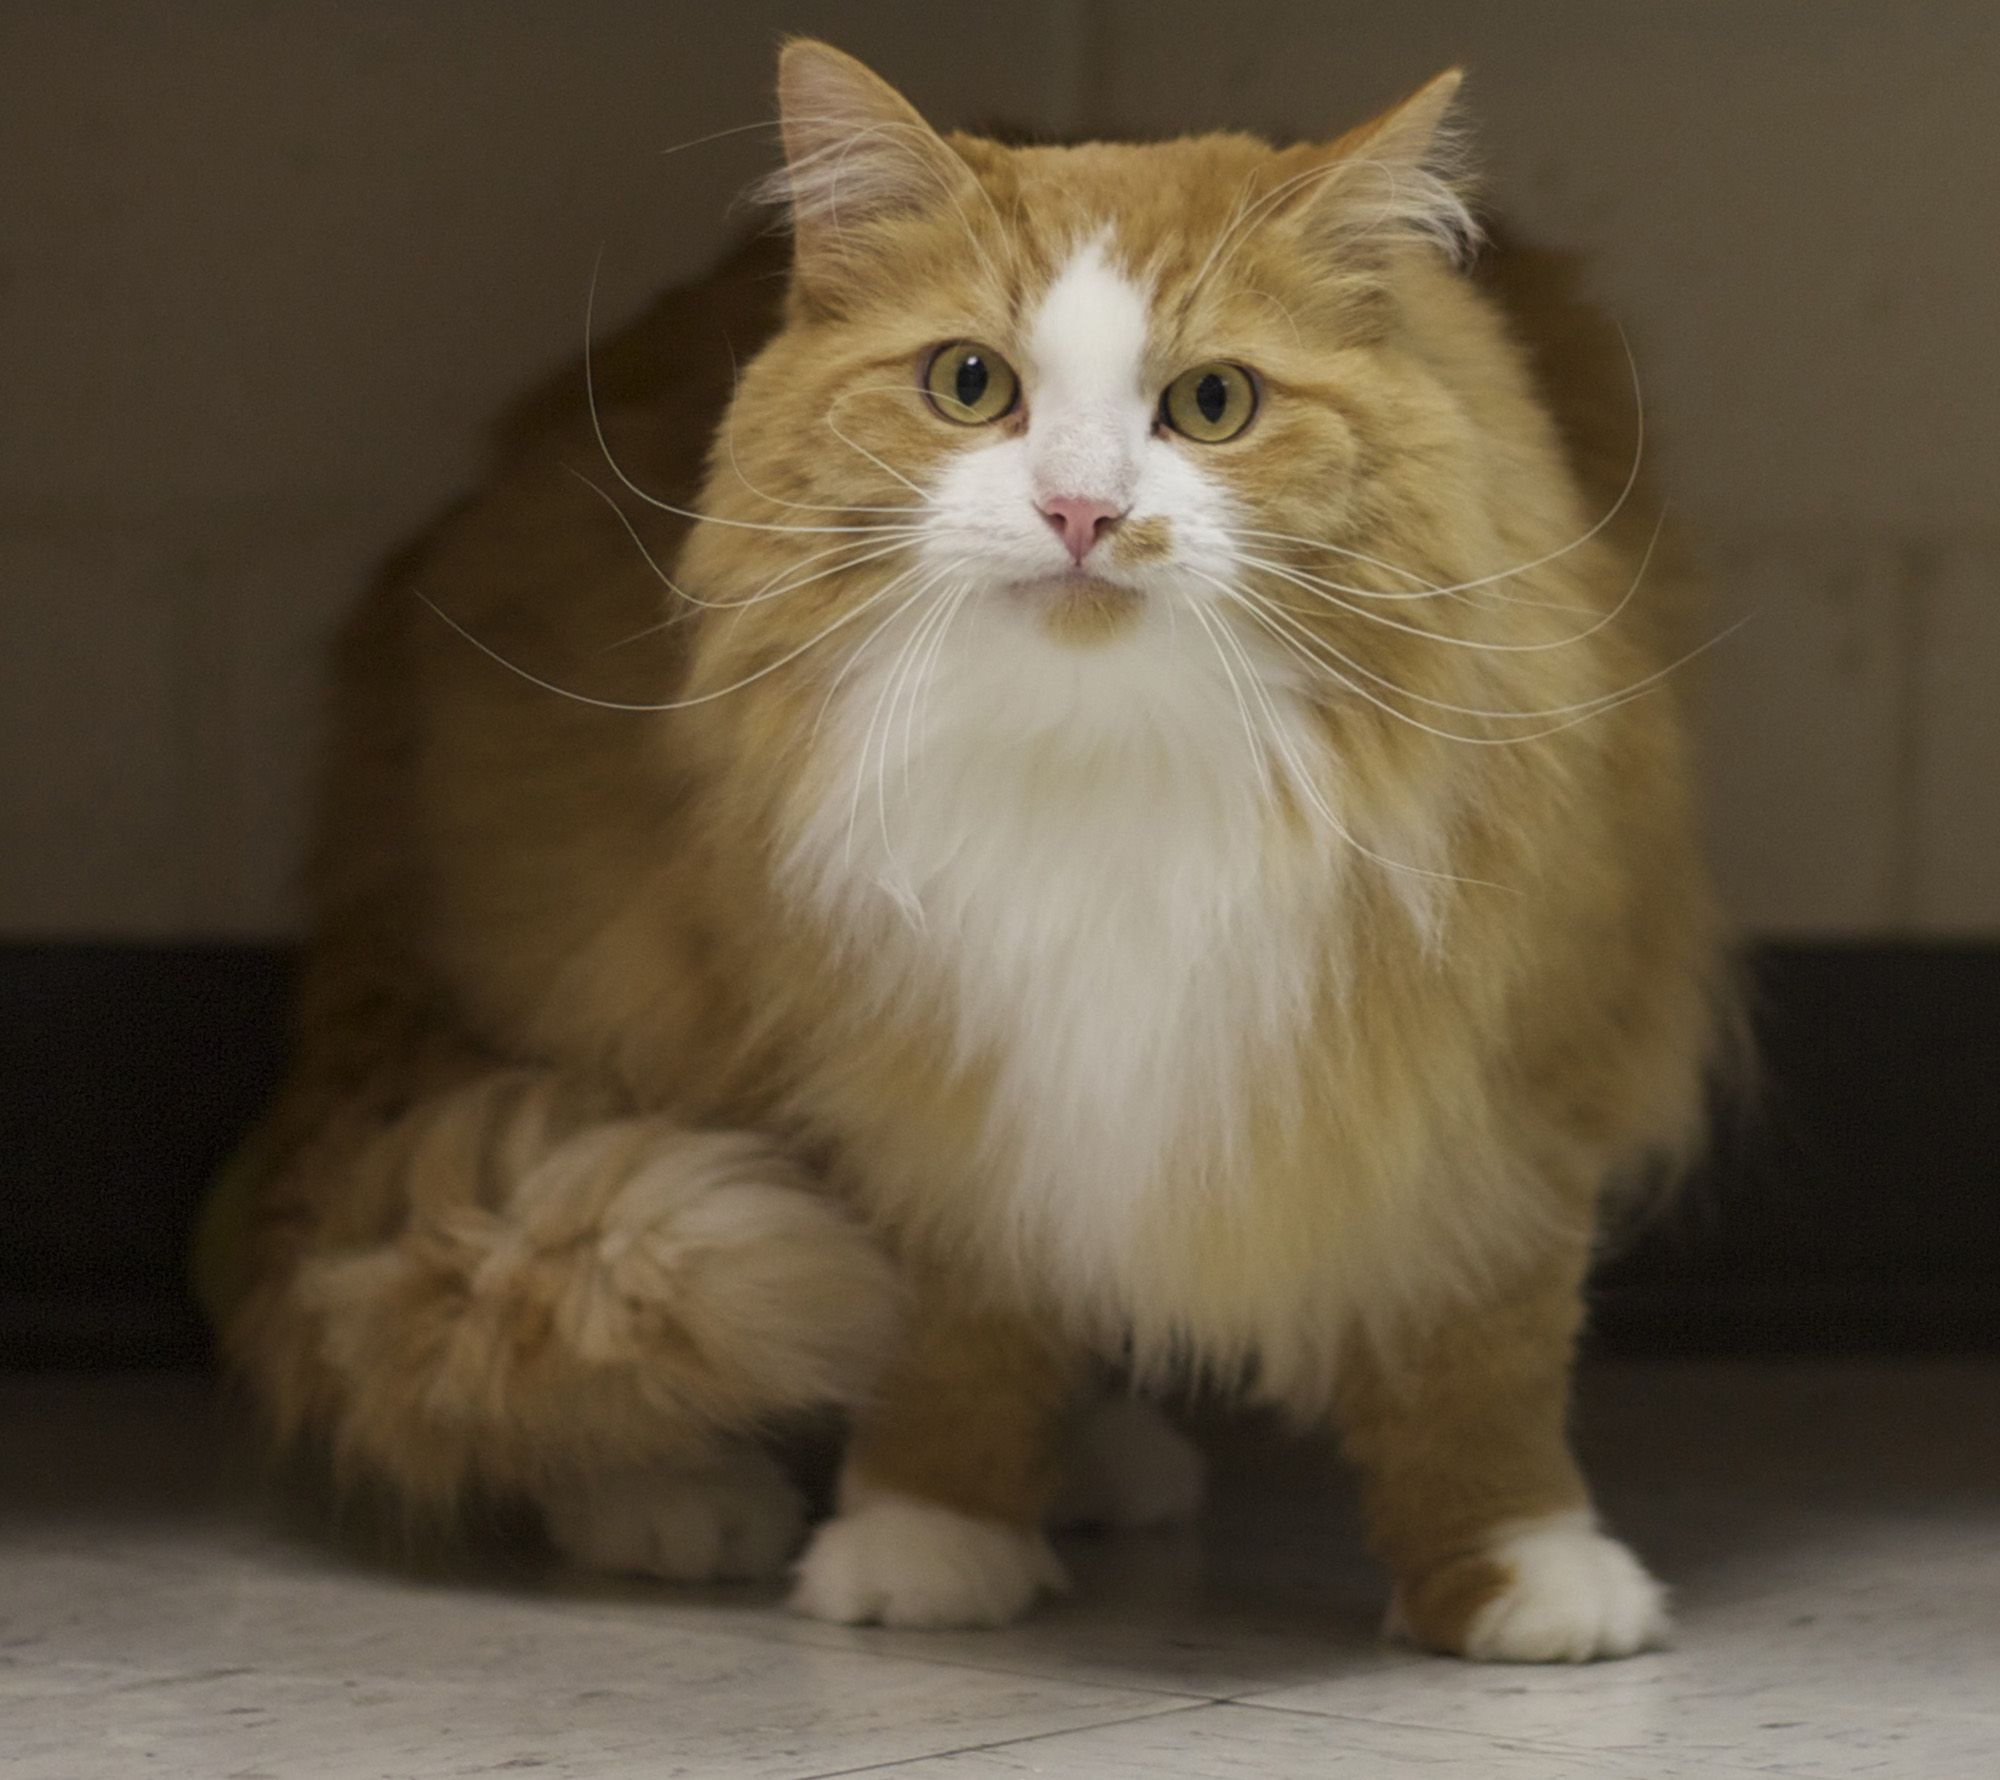 Murphy Is A 5 Year Old Orange And White Domestic Longhair Pets